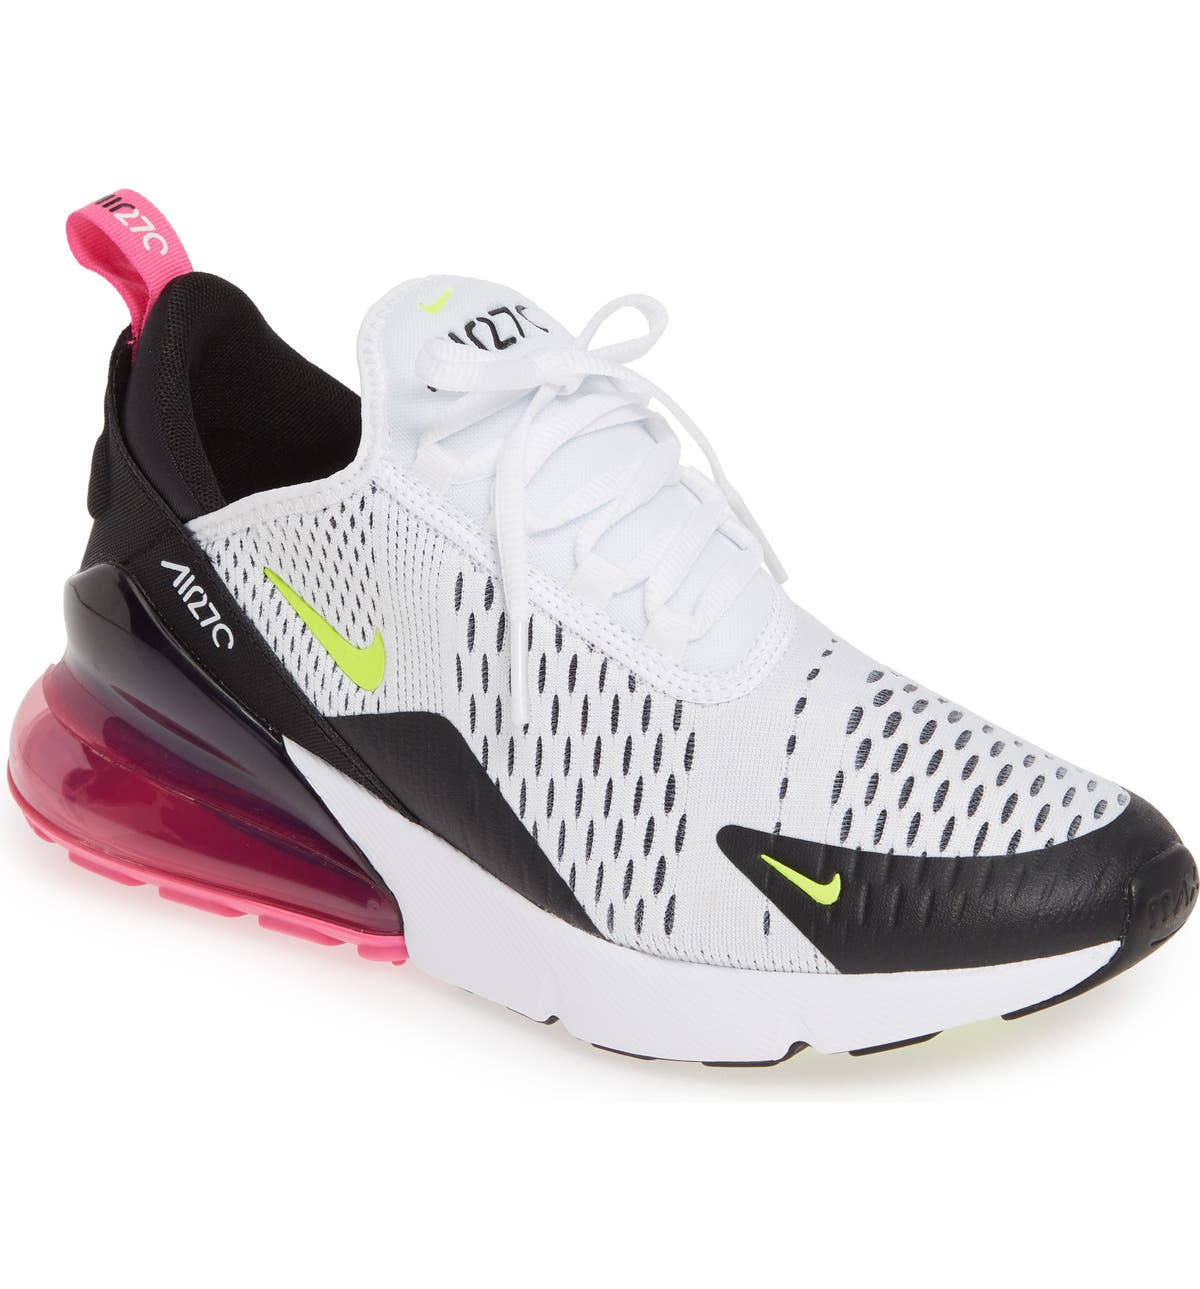 info for 1c158 dbde2 Nike Air Max 270 Sneaker (Toddler, Little Kid   Big Kid)   Nordstrom